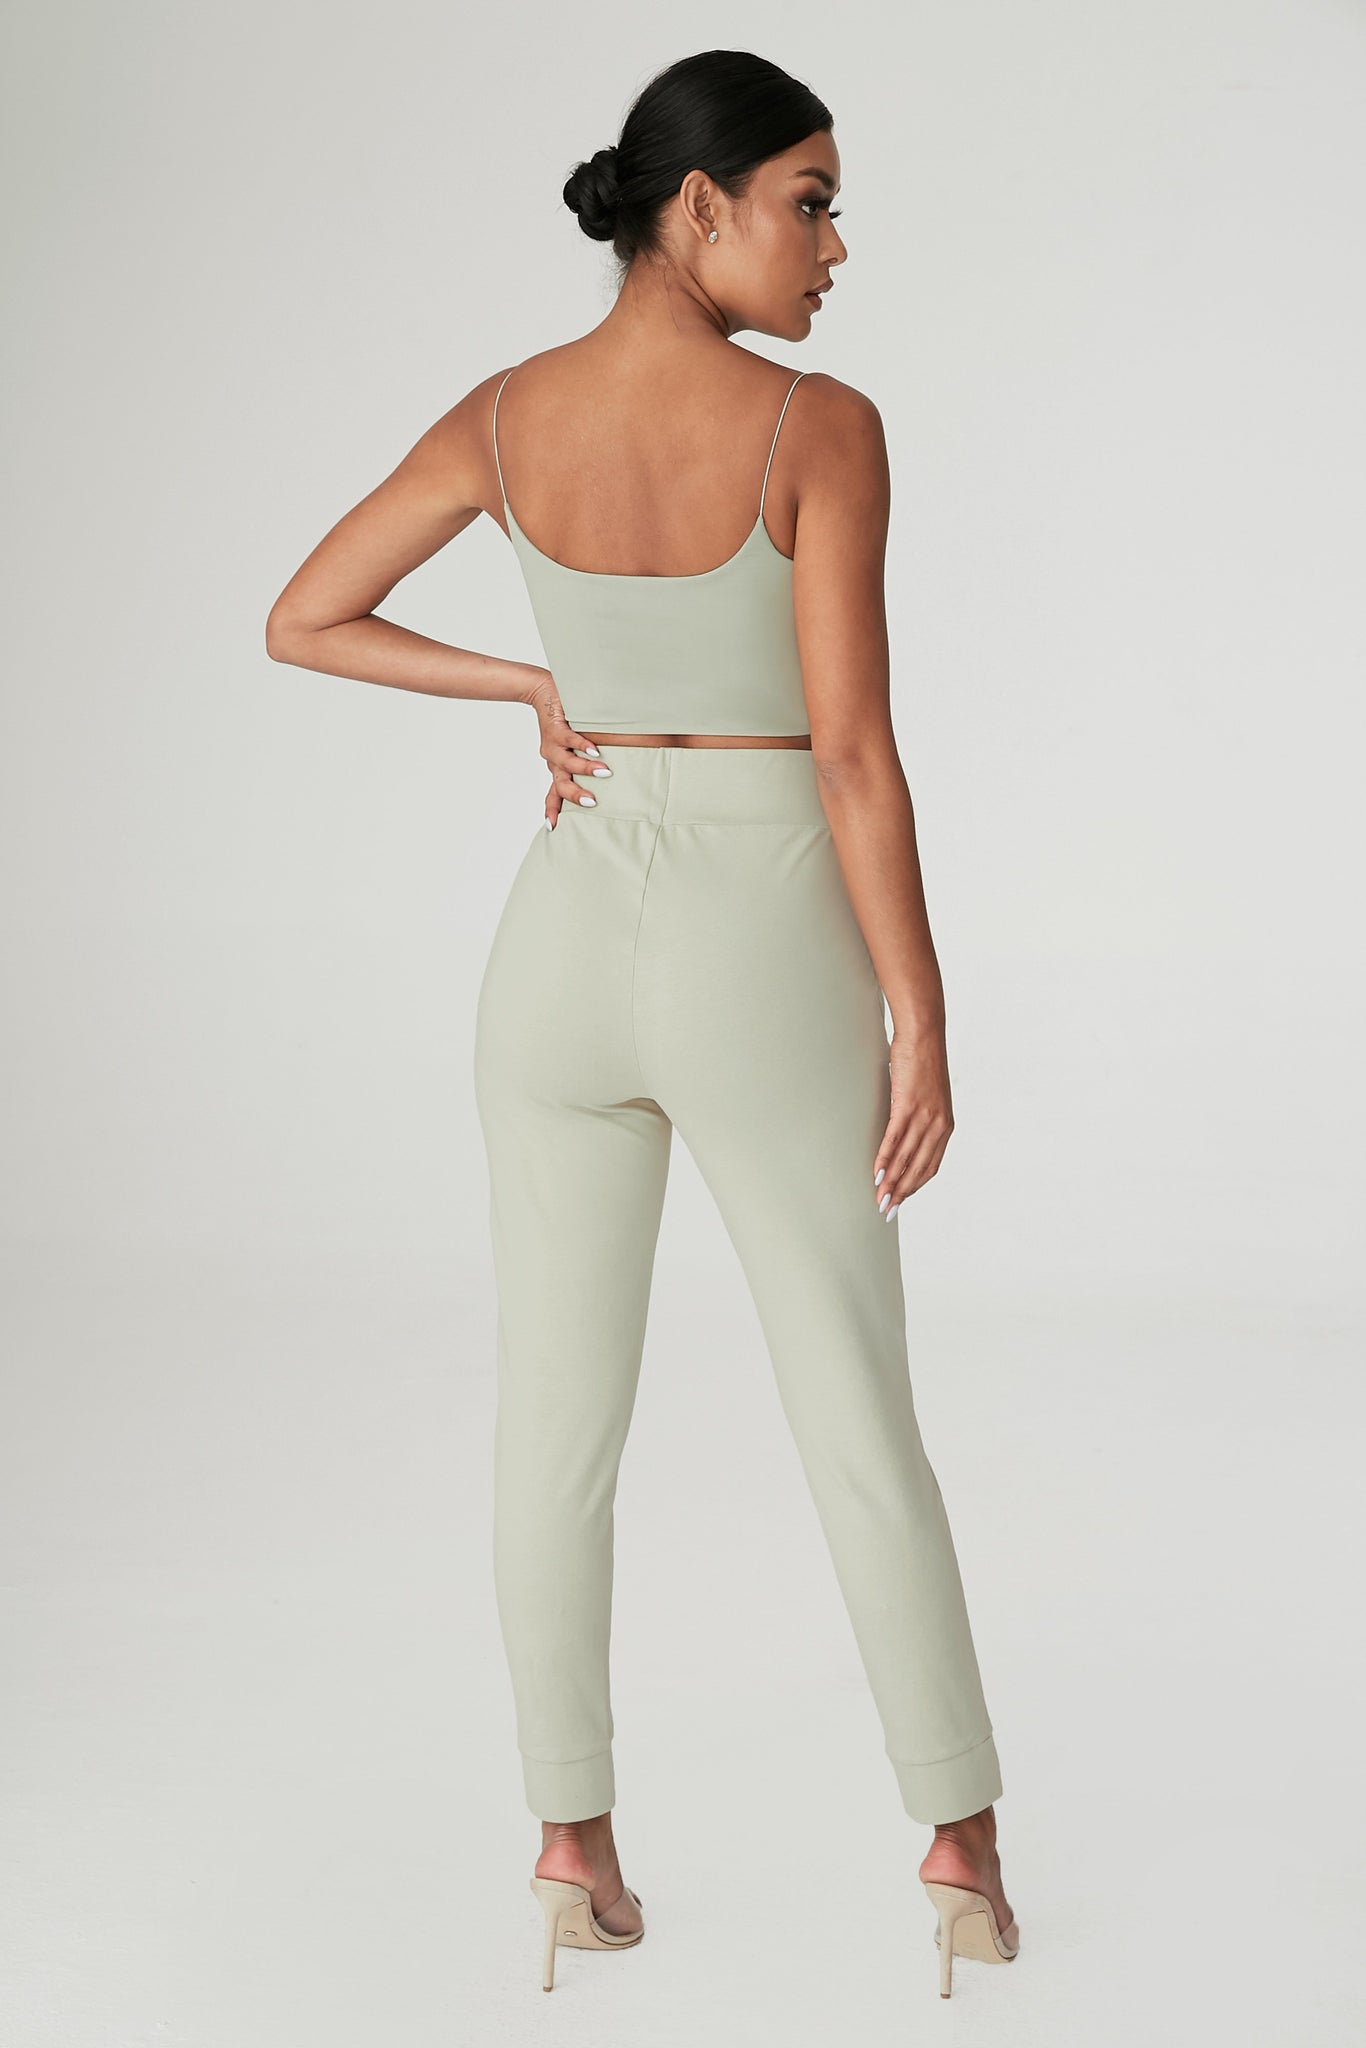 Amelia Fitted High Waisted Joggers - Olive - MESHKI